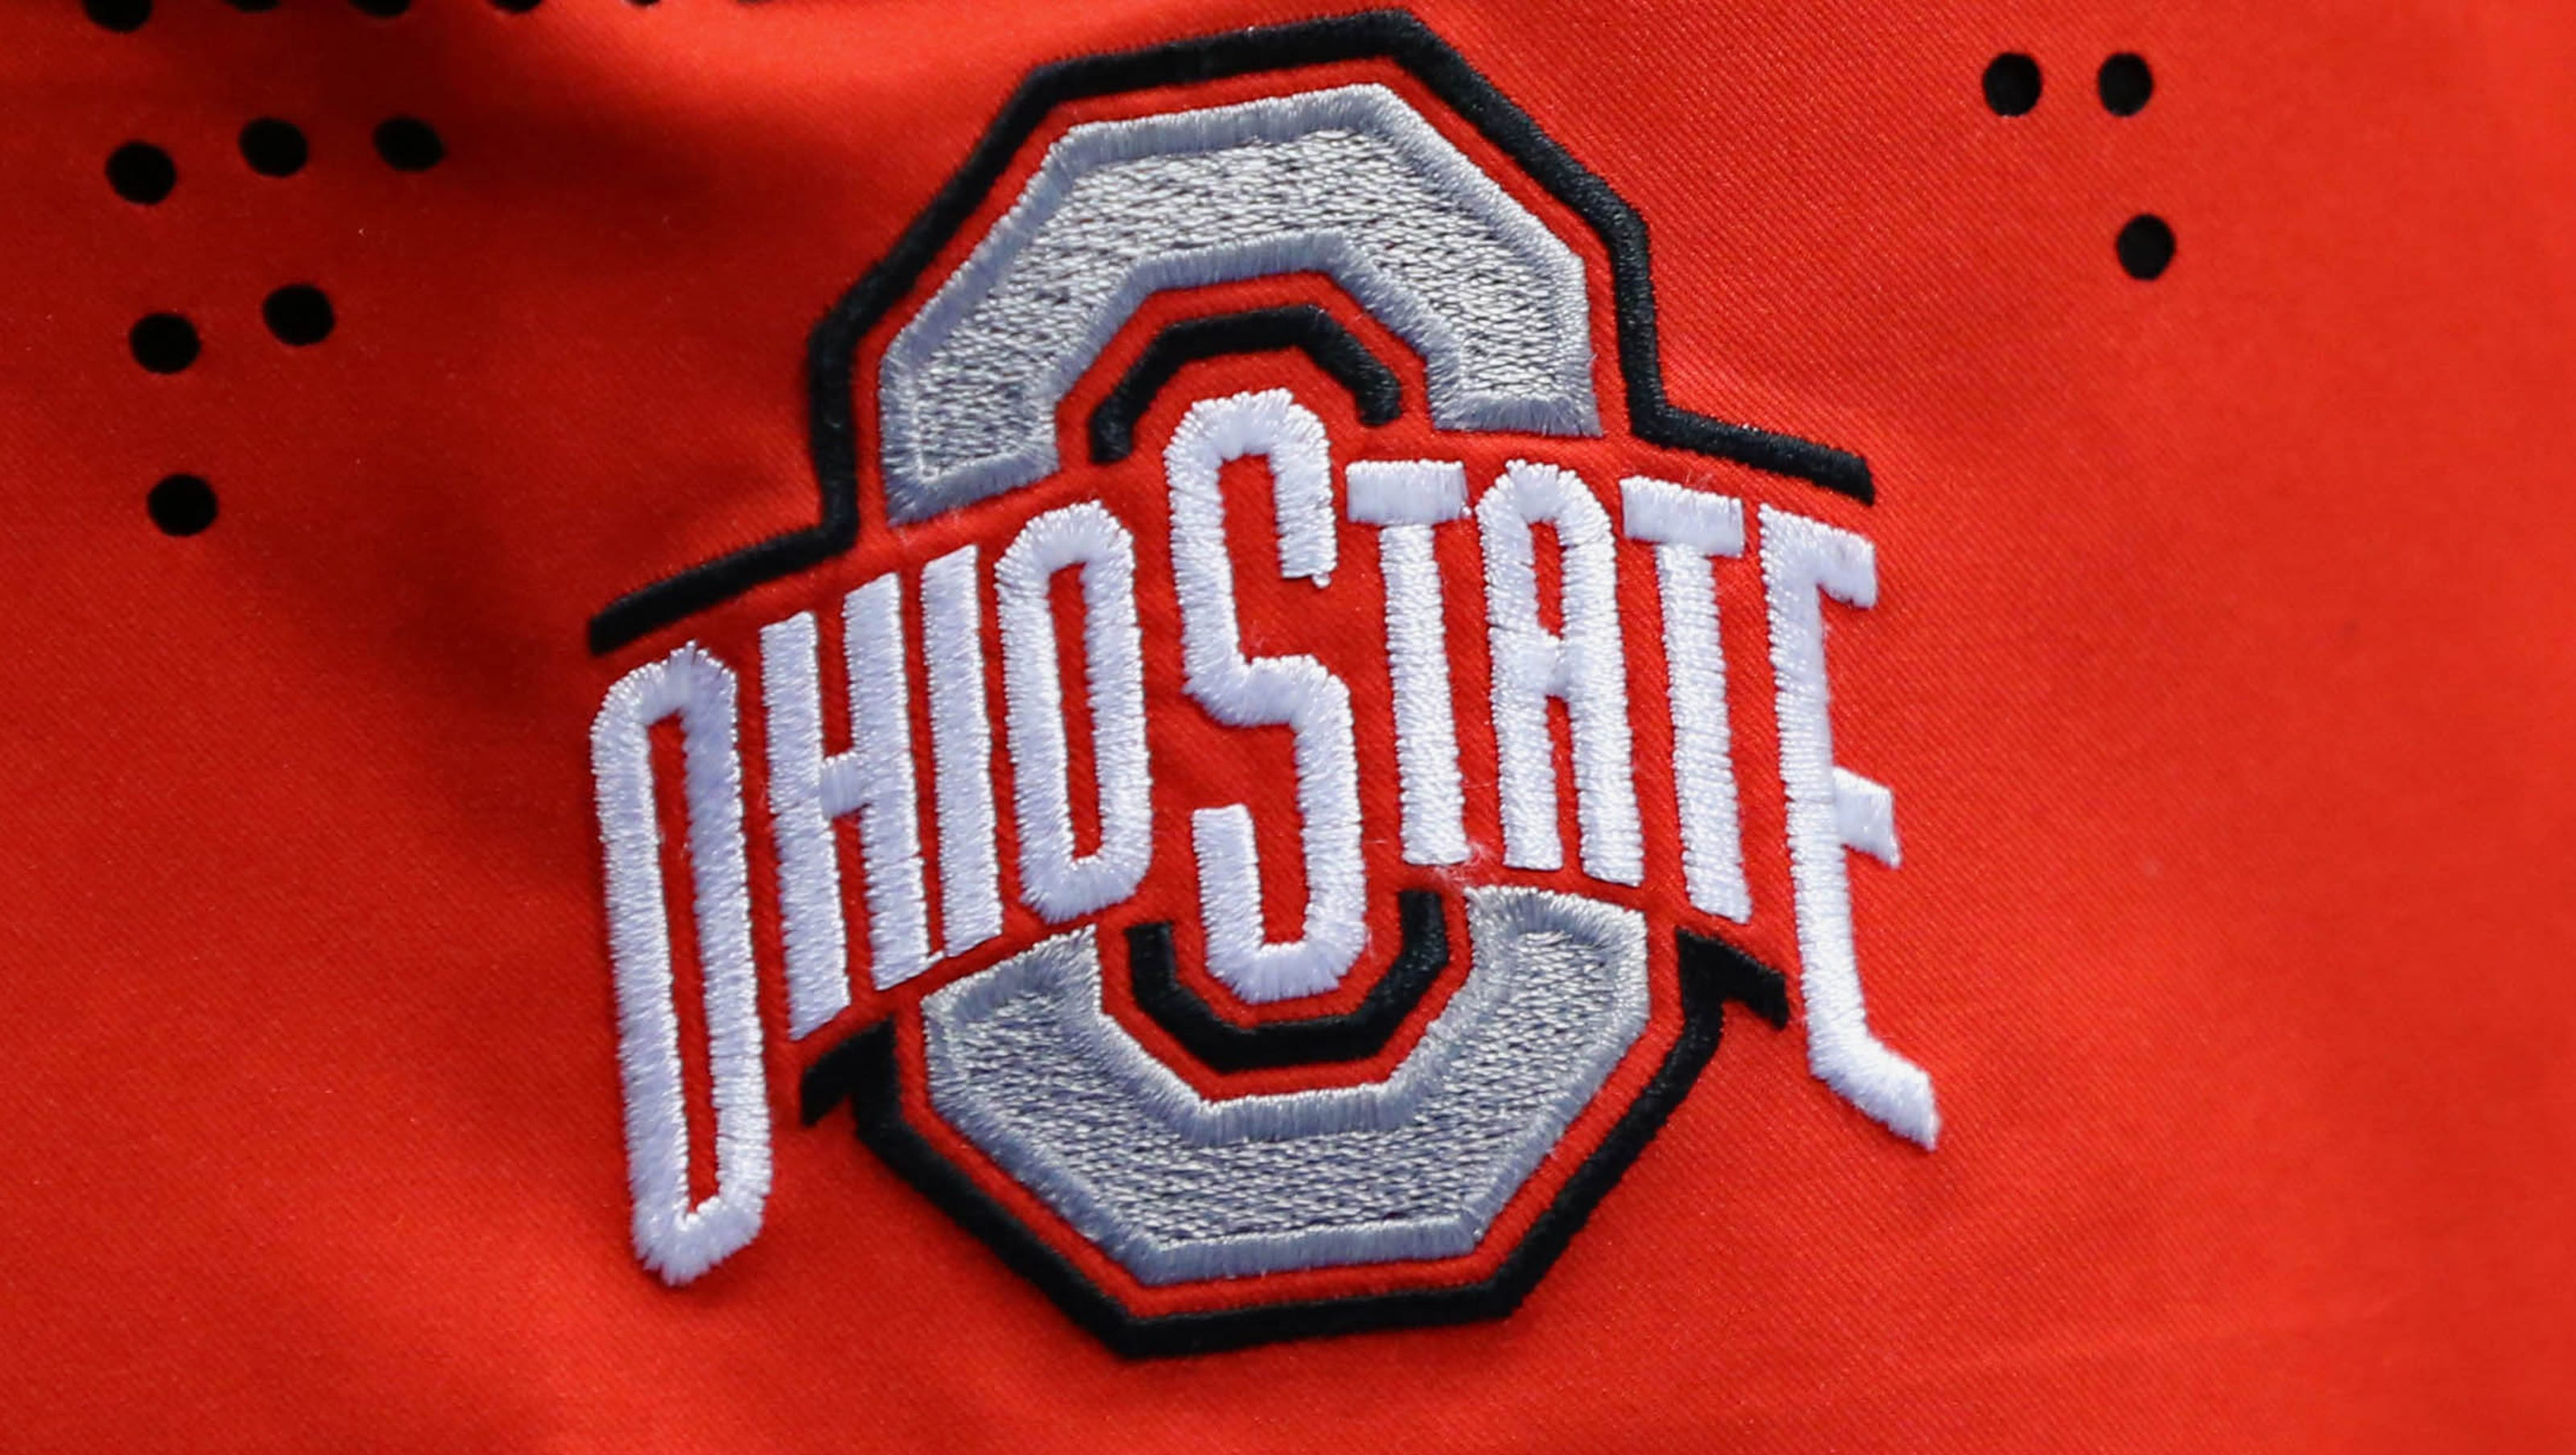 Ohio State: More than 100 former students allege sexual abuse by ex-team doctor Richard Strauss